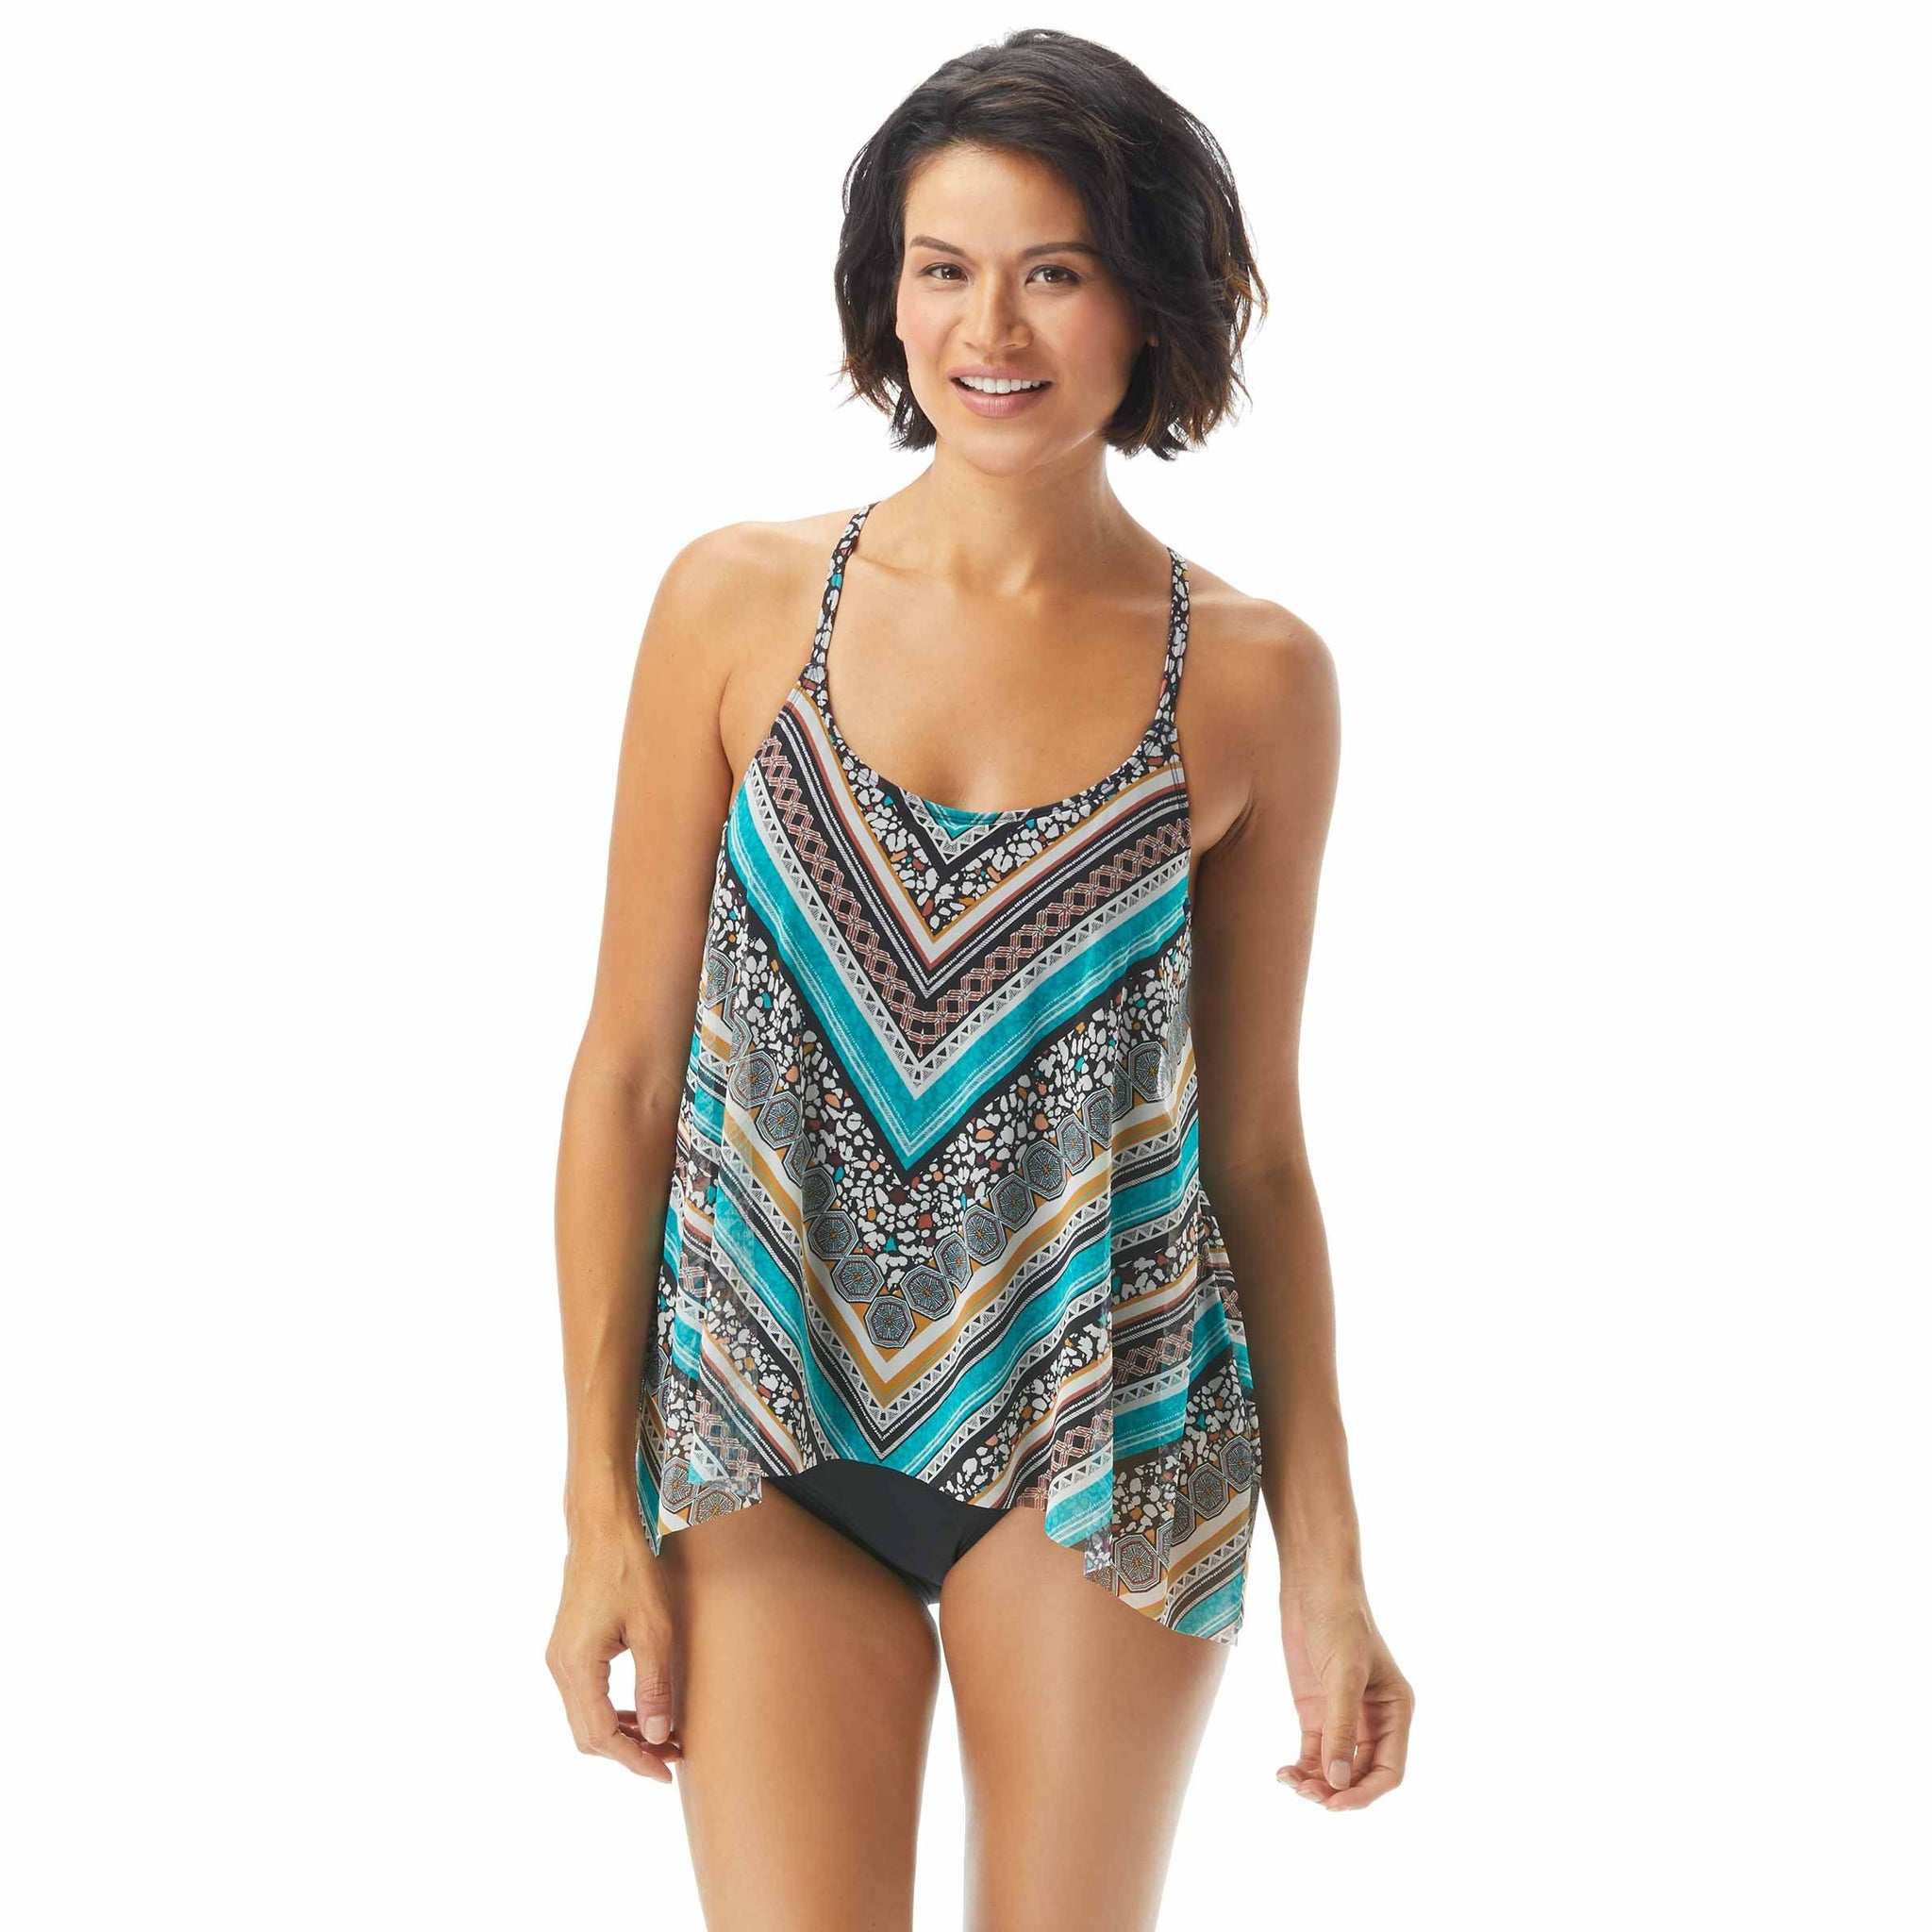 Coco Reef Current Bra Sized Mesh Layer Underwire Tankini Top - Wild Stripes U53035